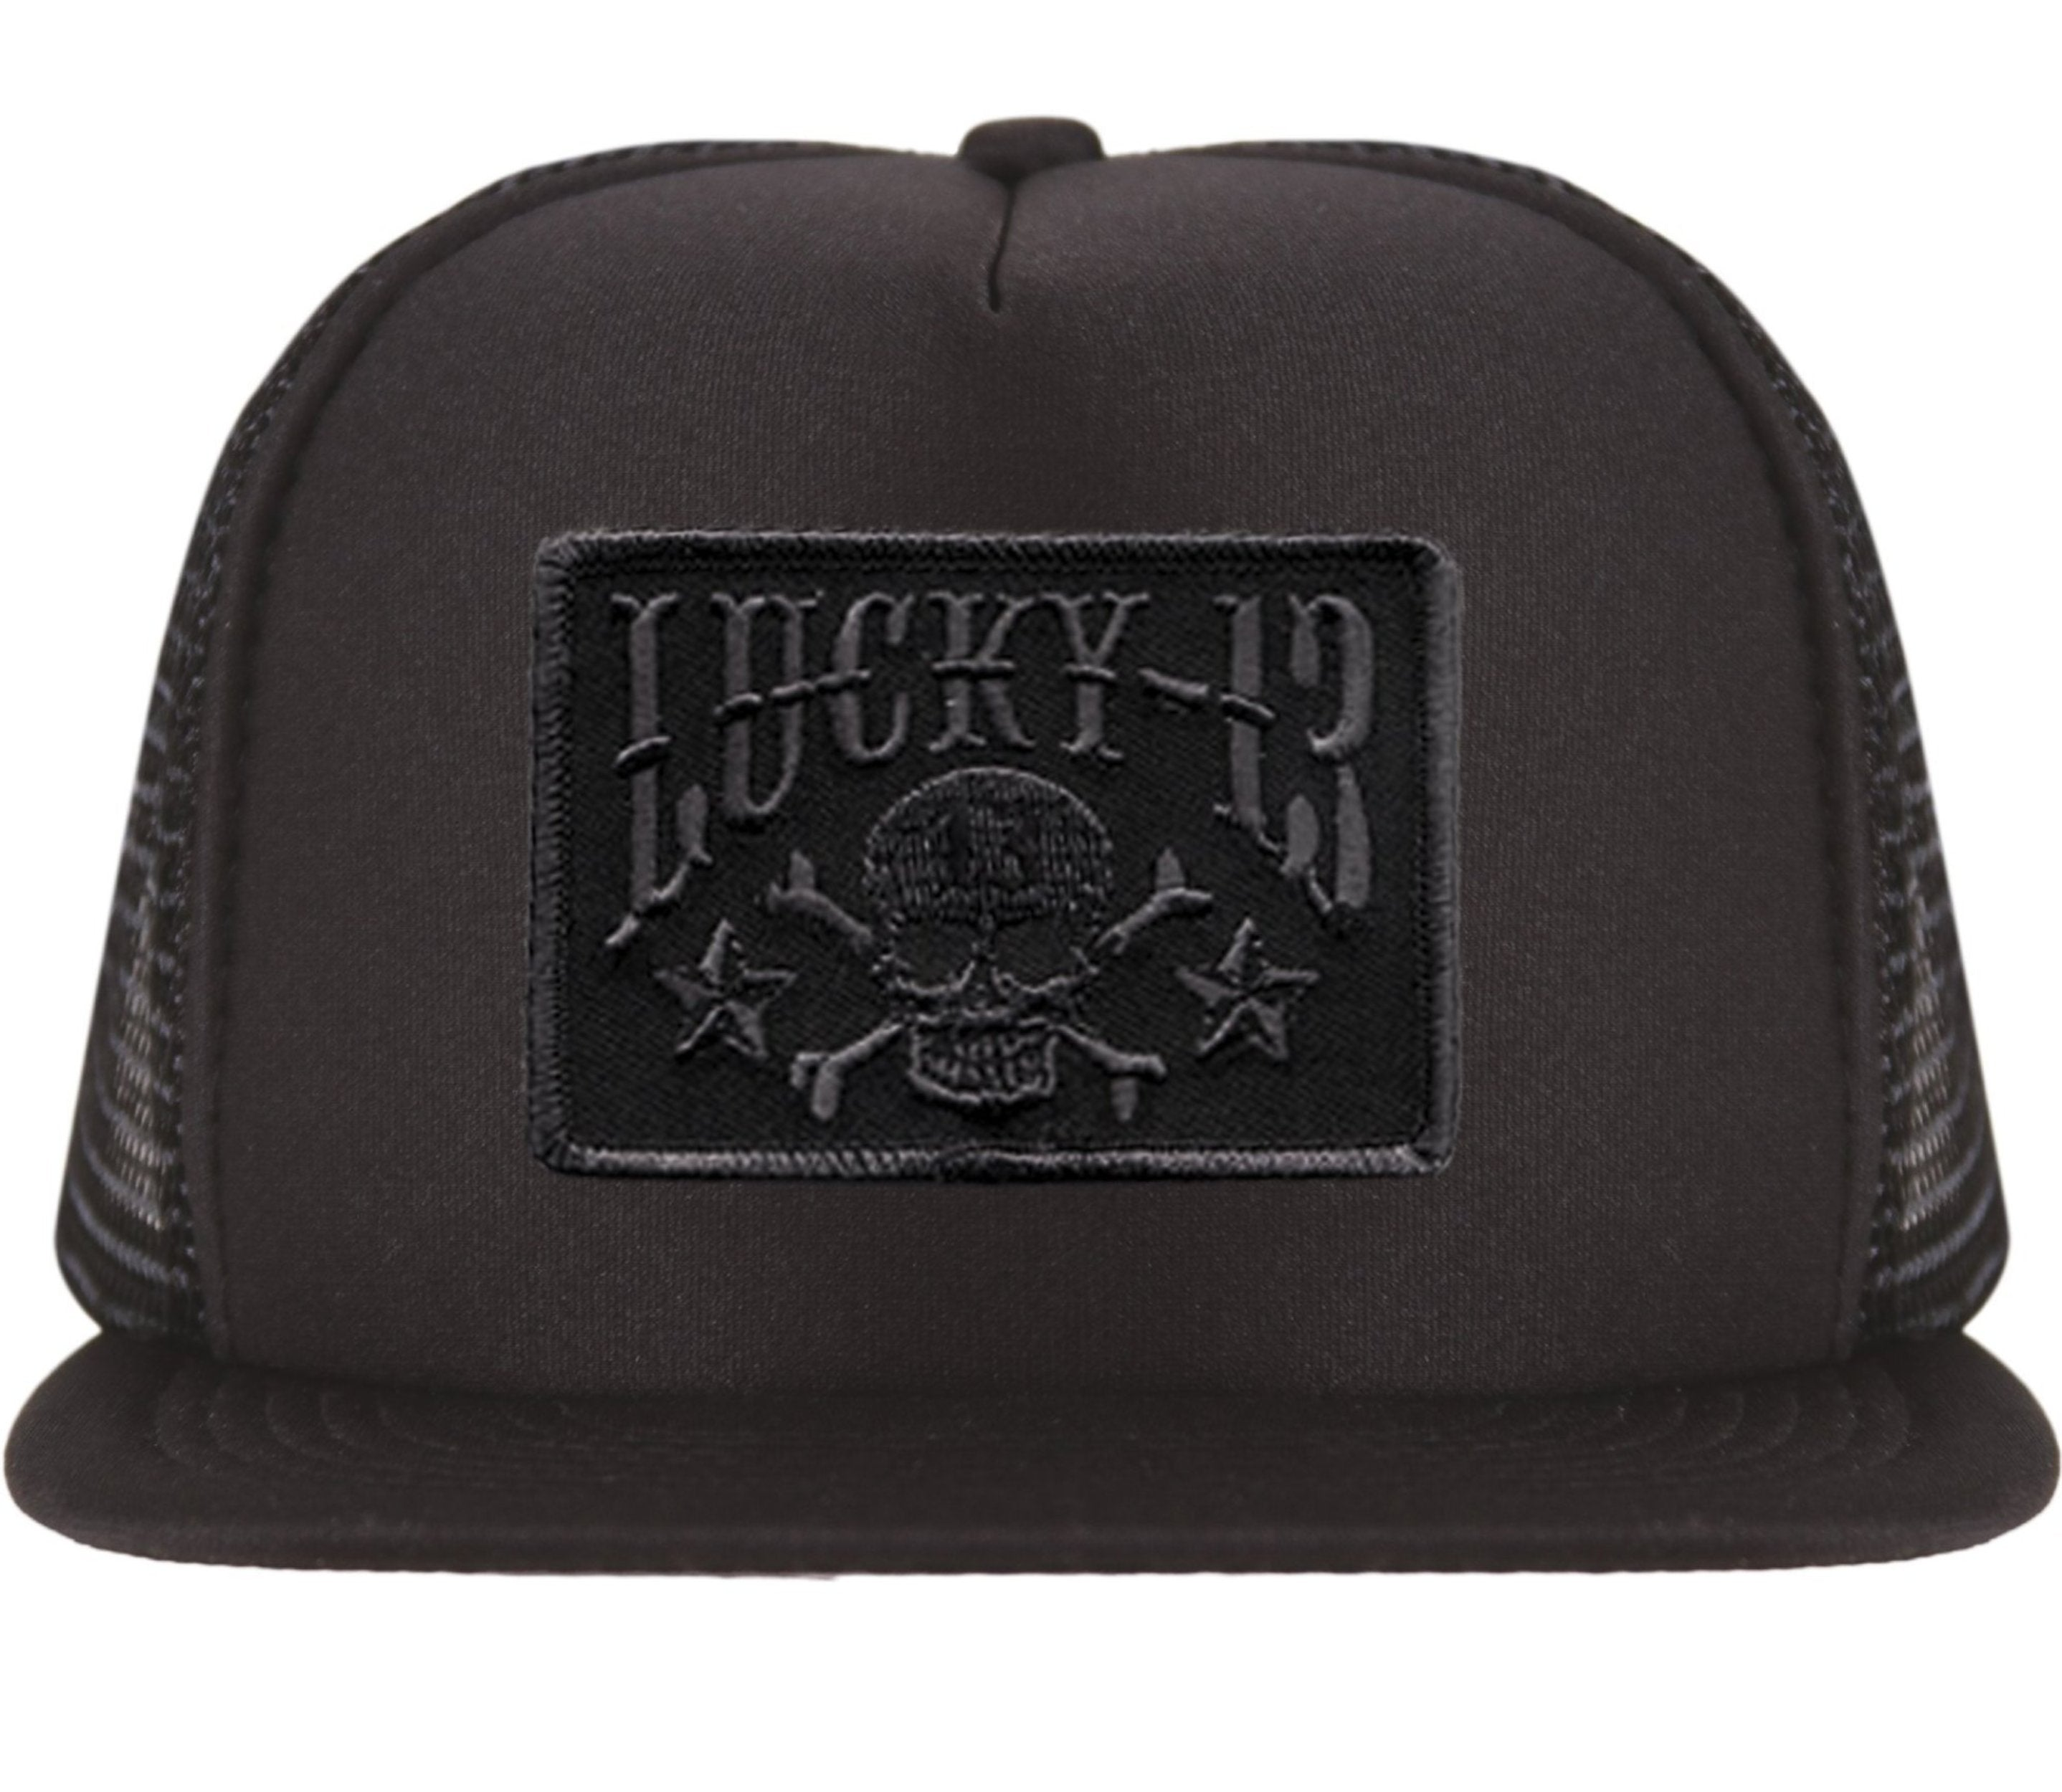 The SKULL STARS Flat Bill Trucker Cap